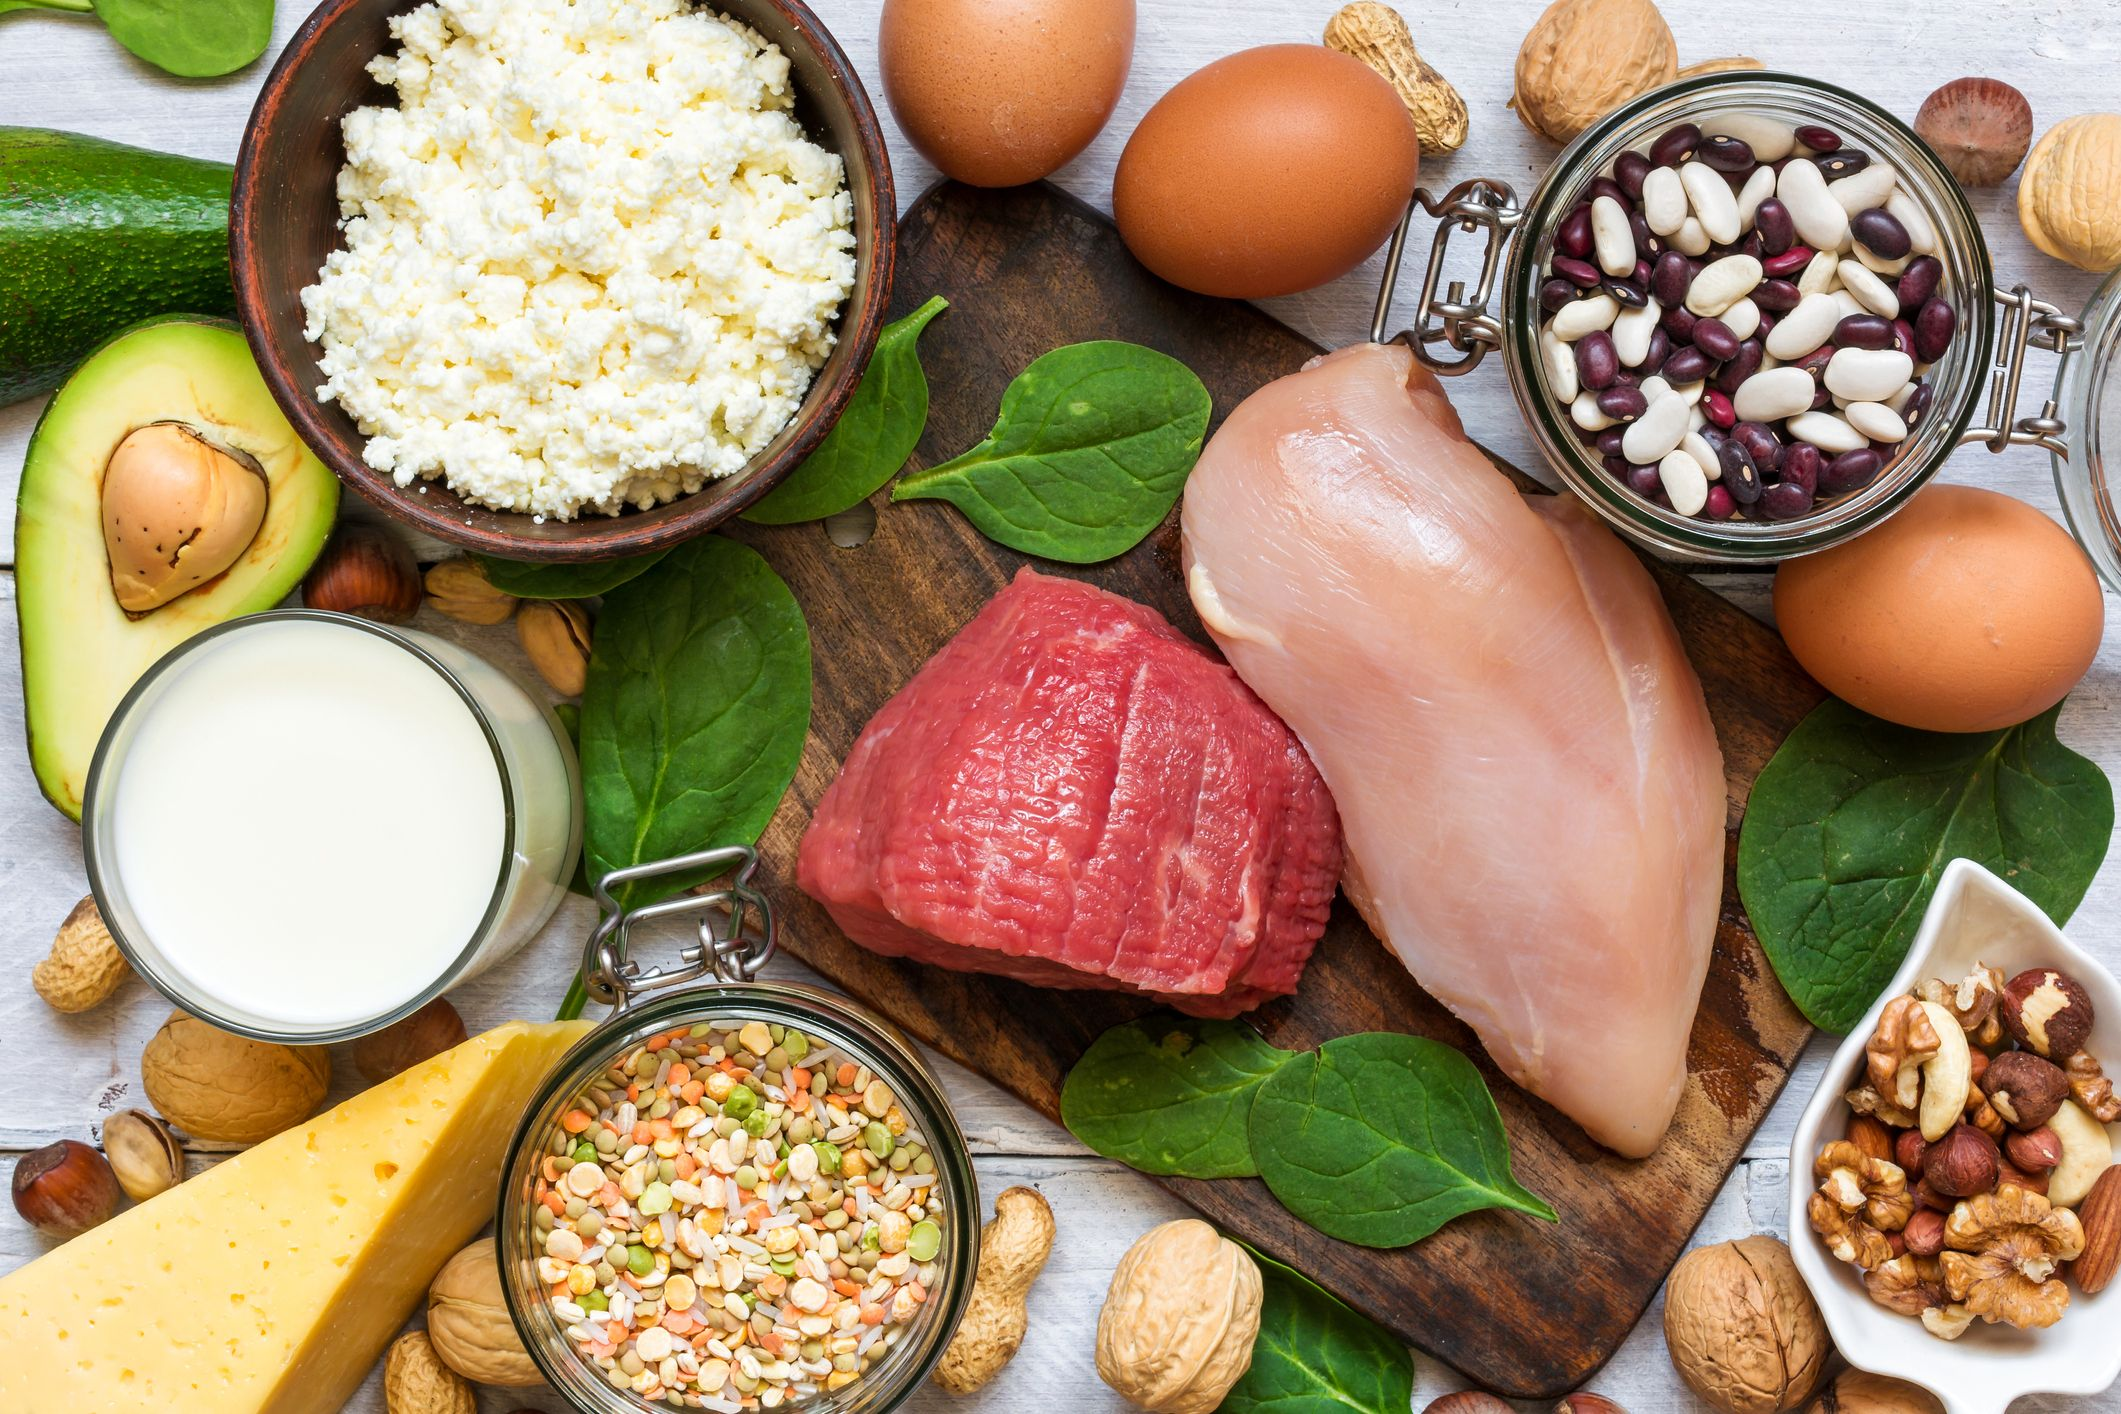 Why Should Protein Be an Important Part of Your Diet